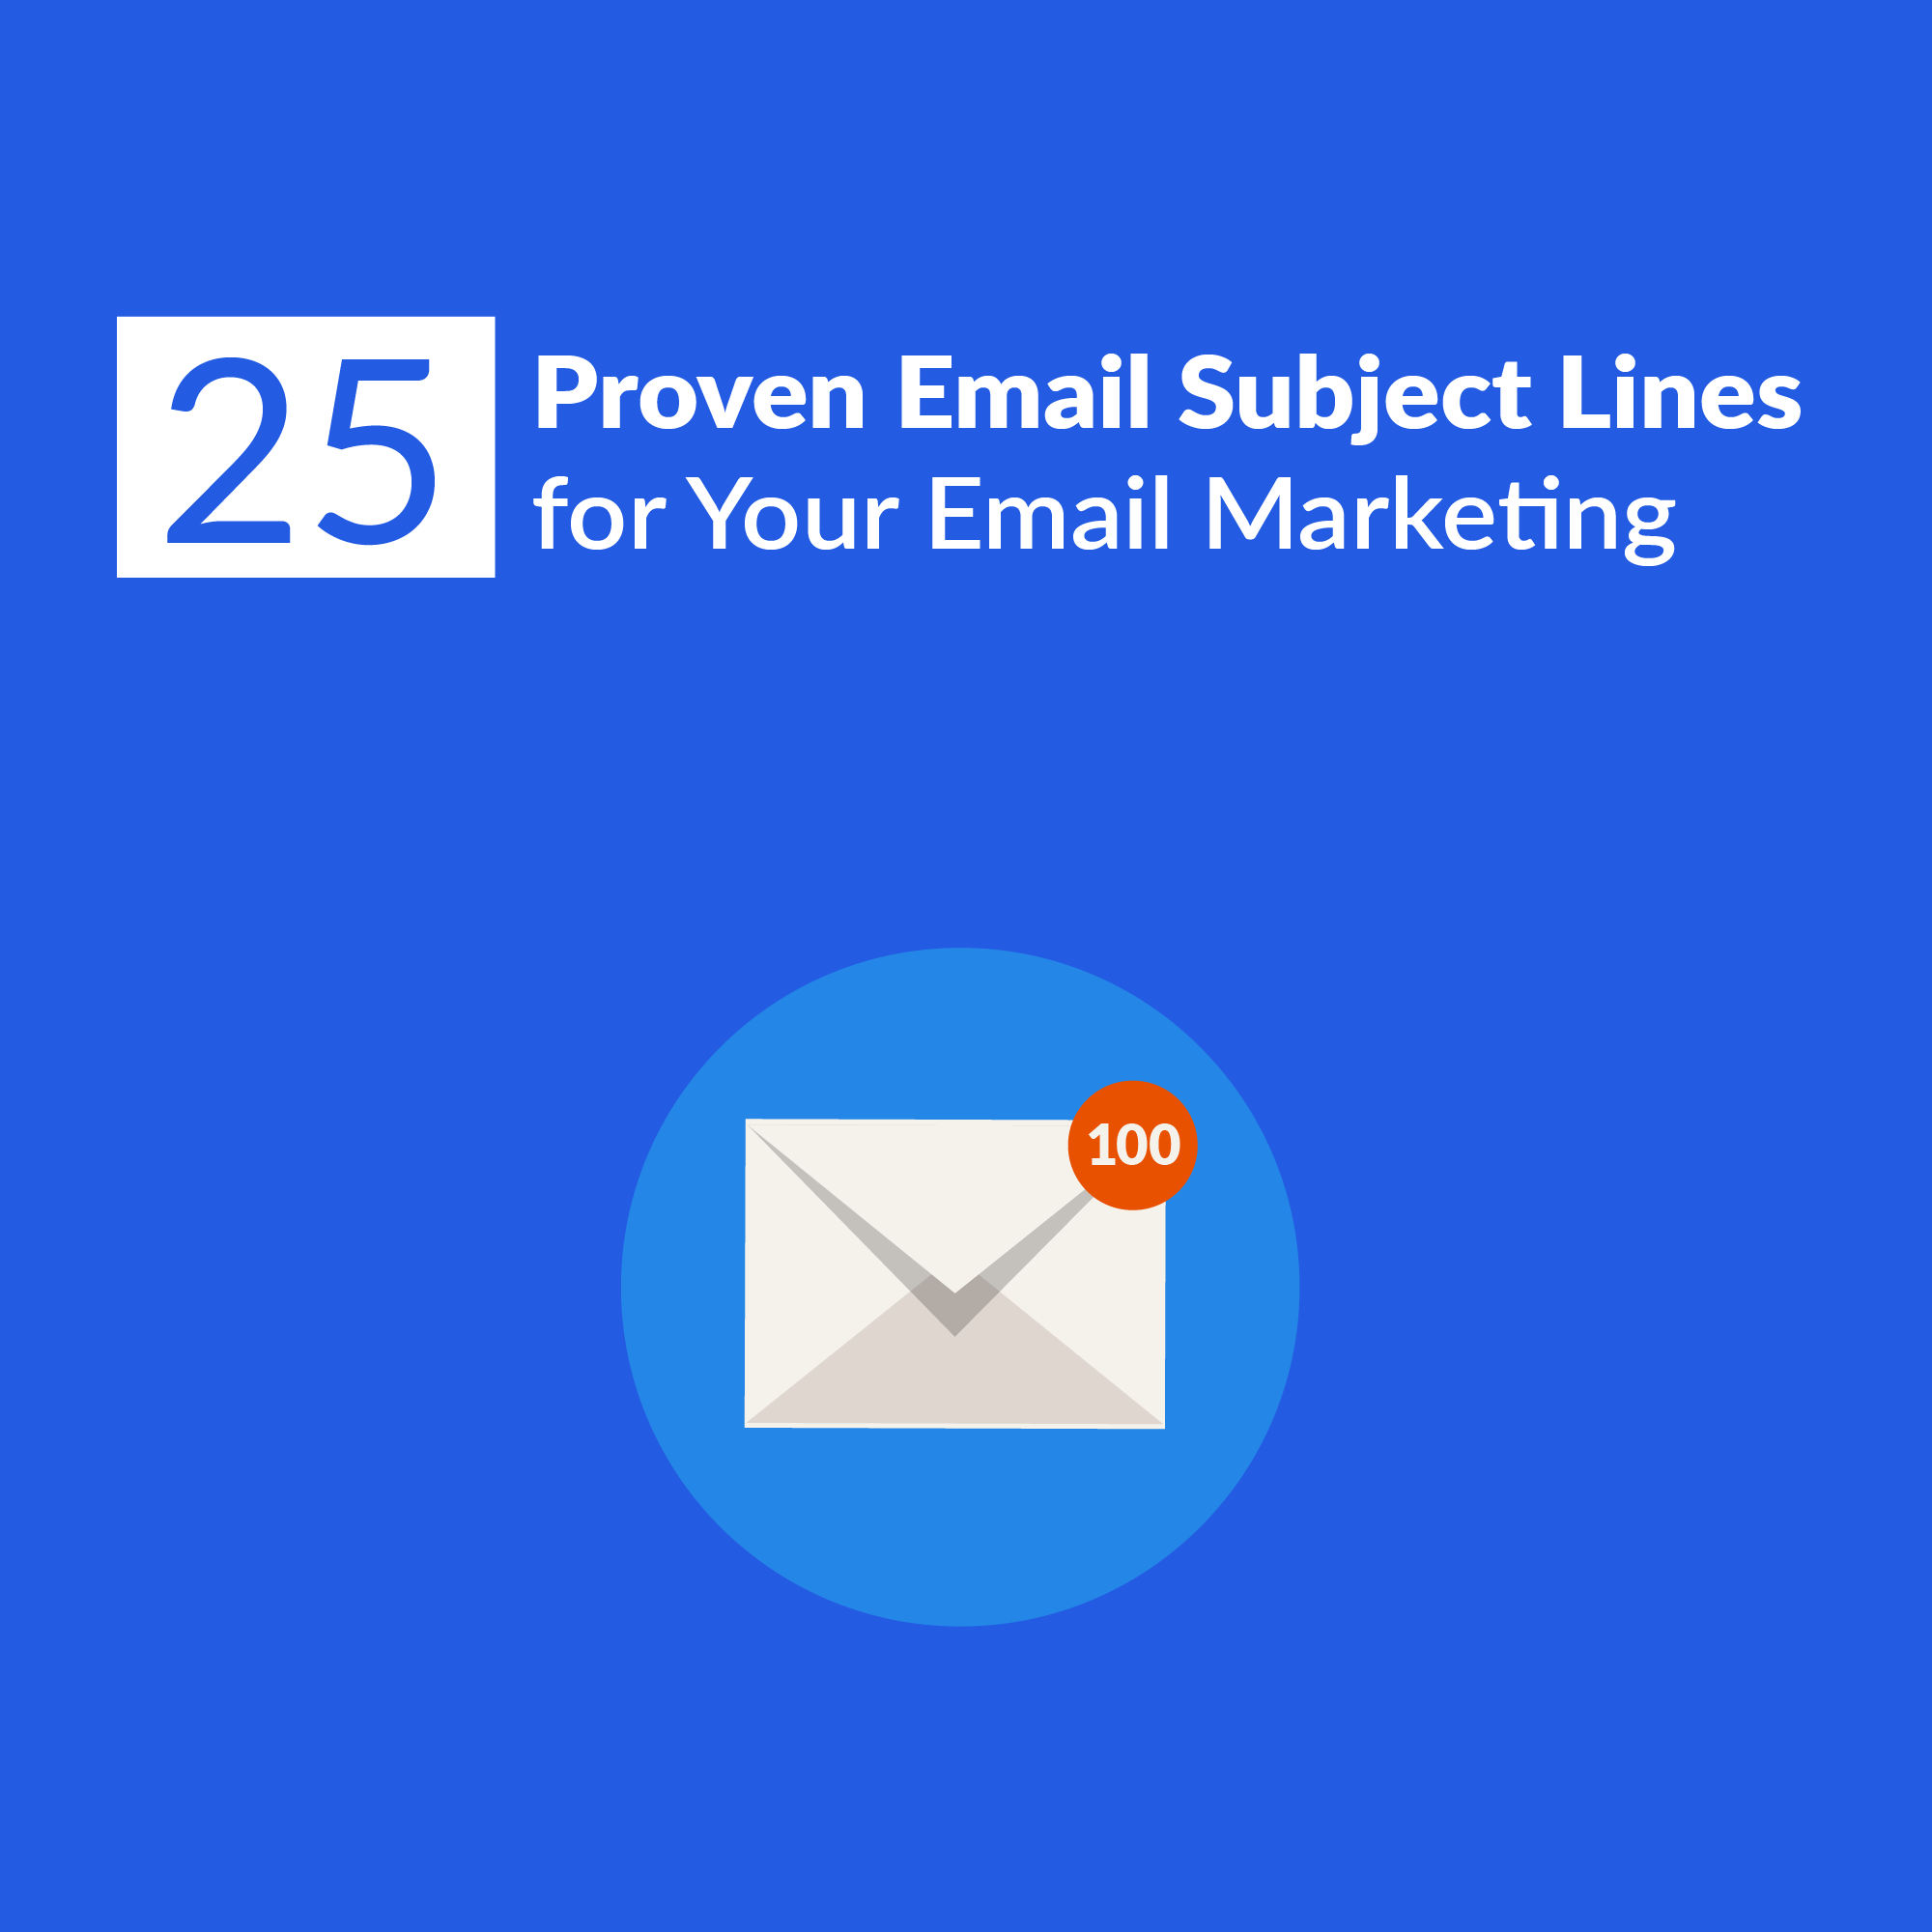 25 Proven Email Subject Lines